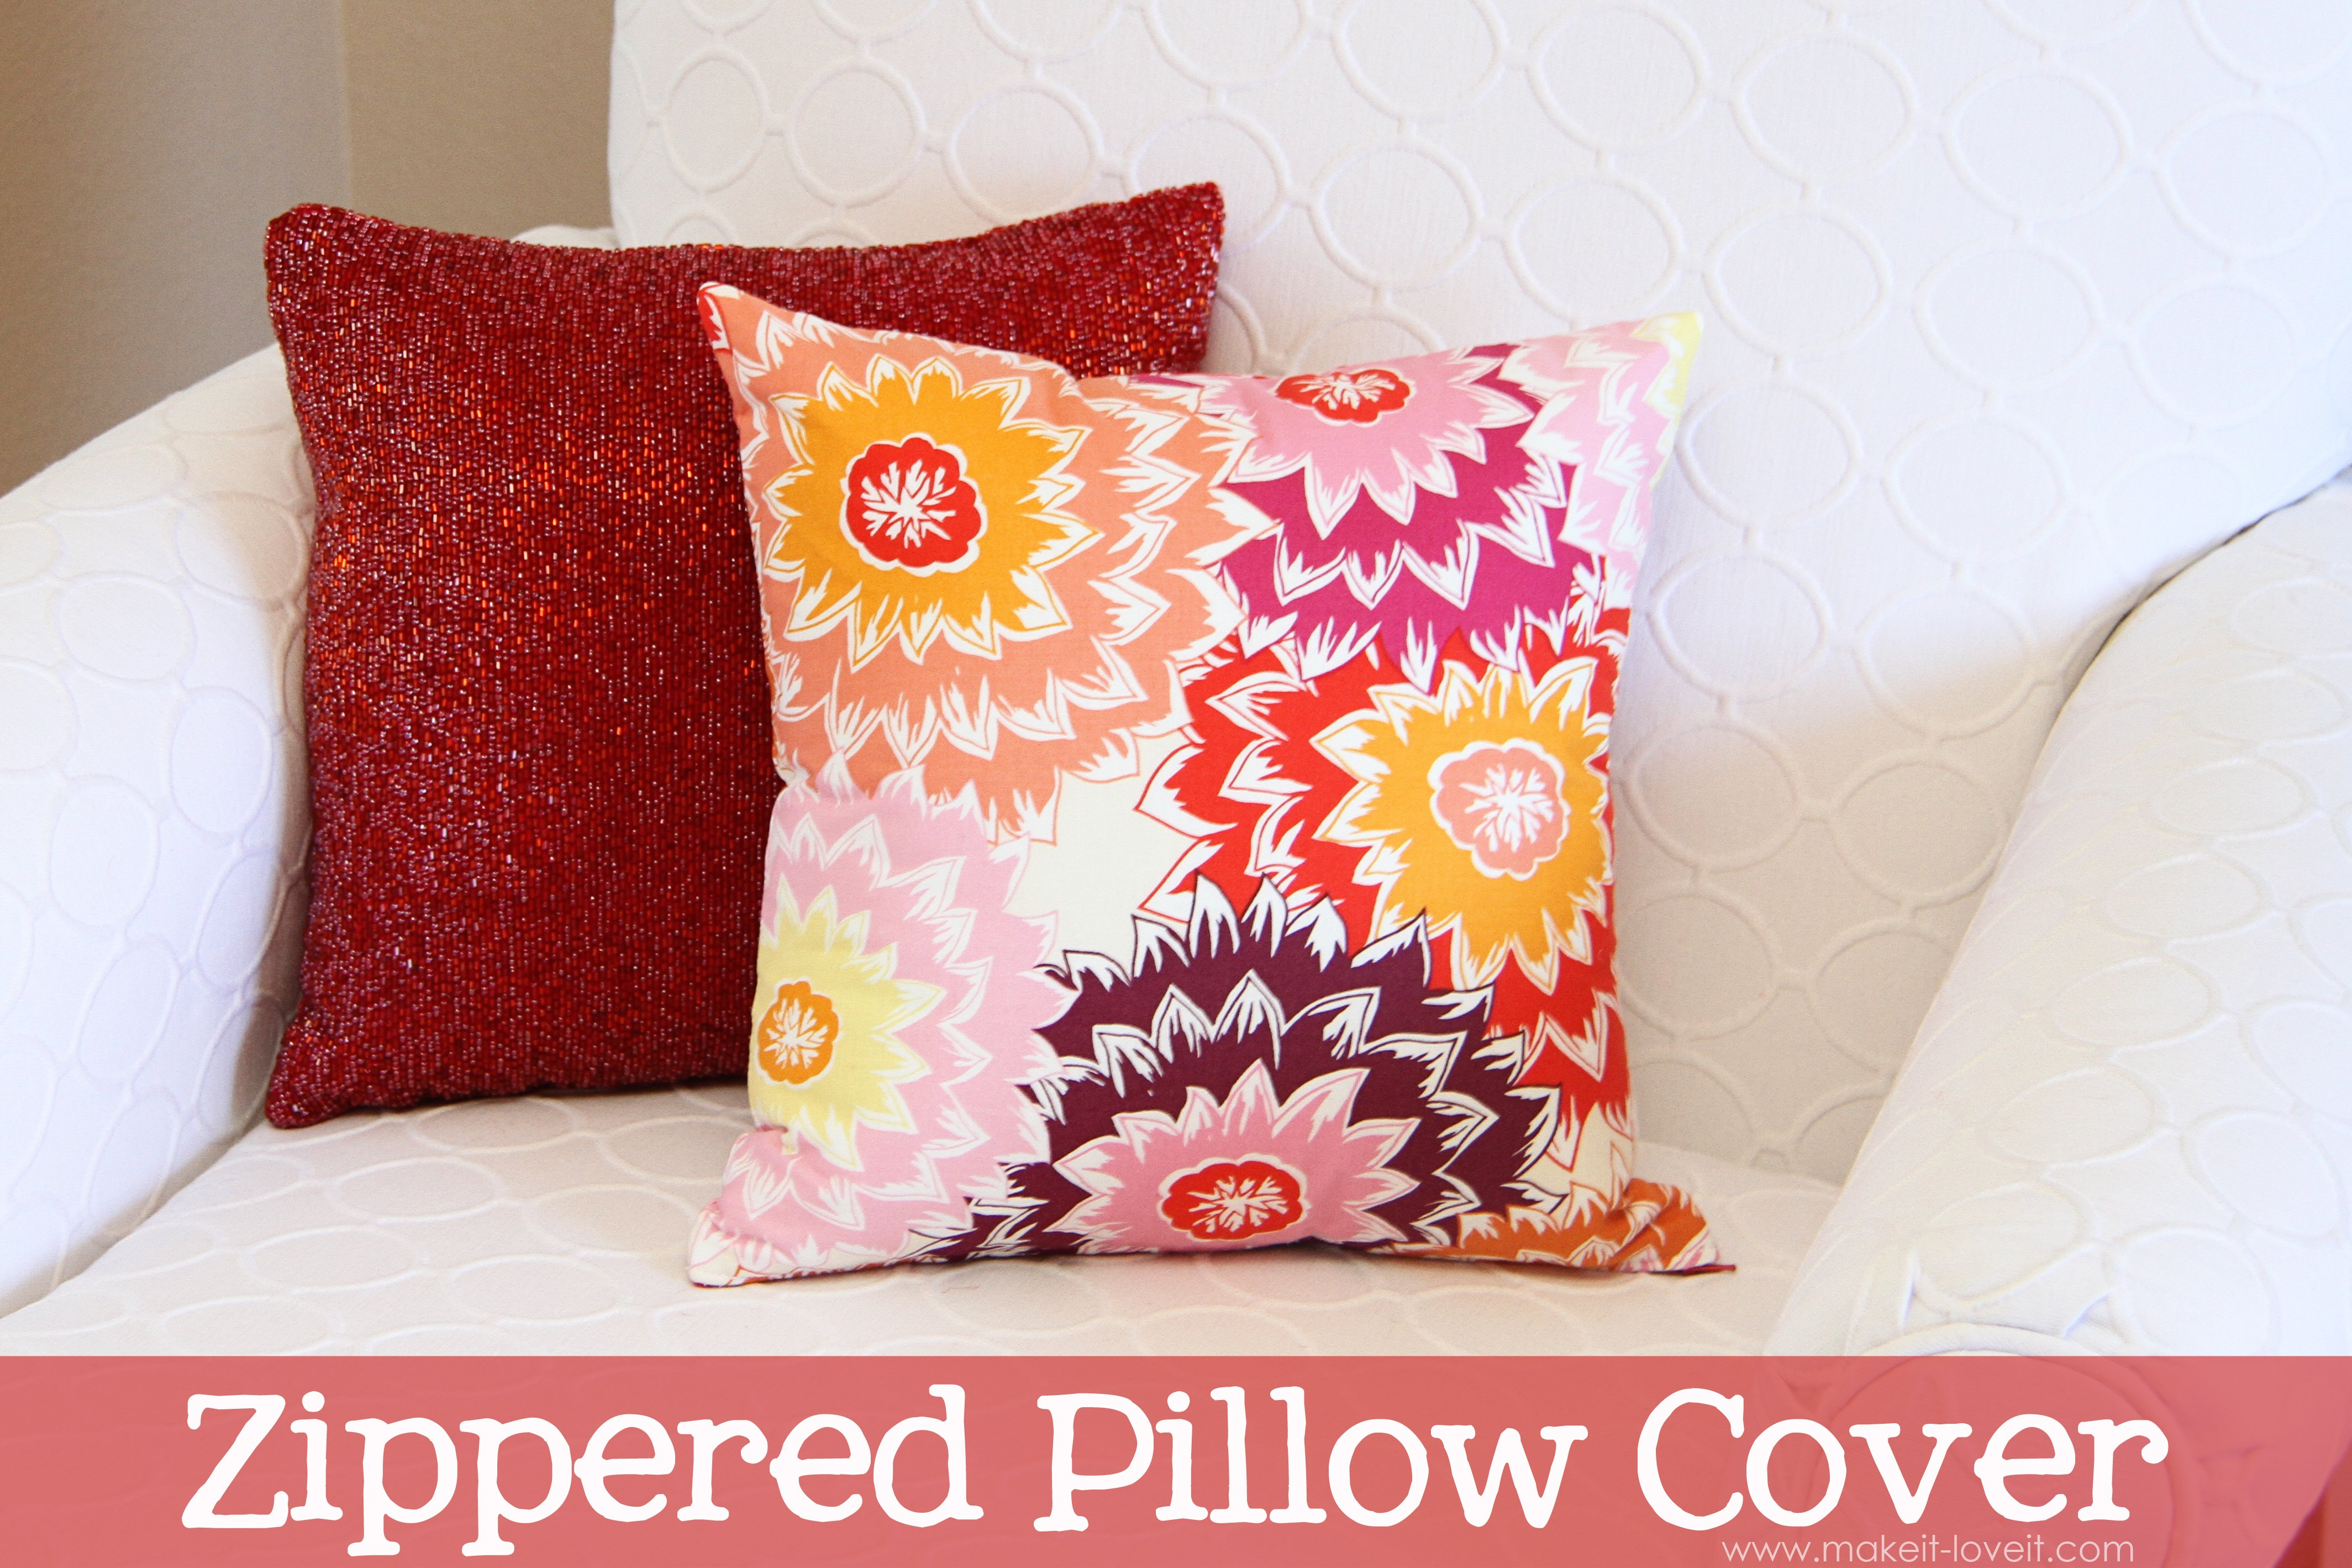 Find great deals on eBay for pillowcase covers. Shop with confidence.